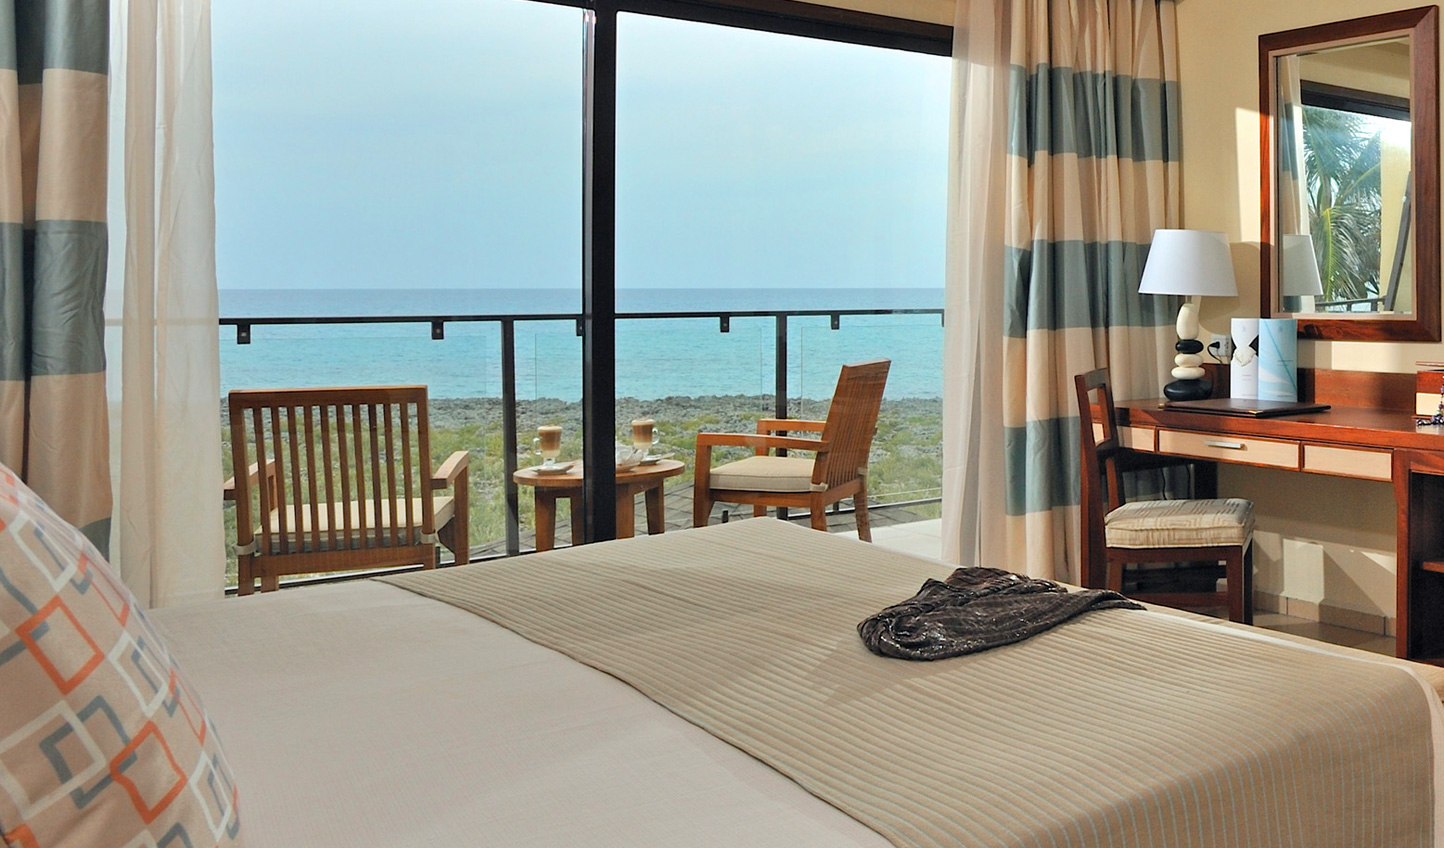 Wake up to views across Caribbean waters